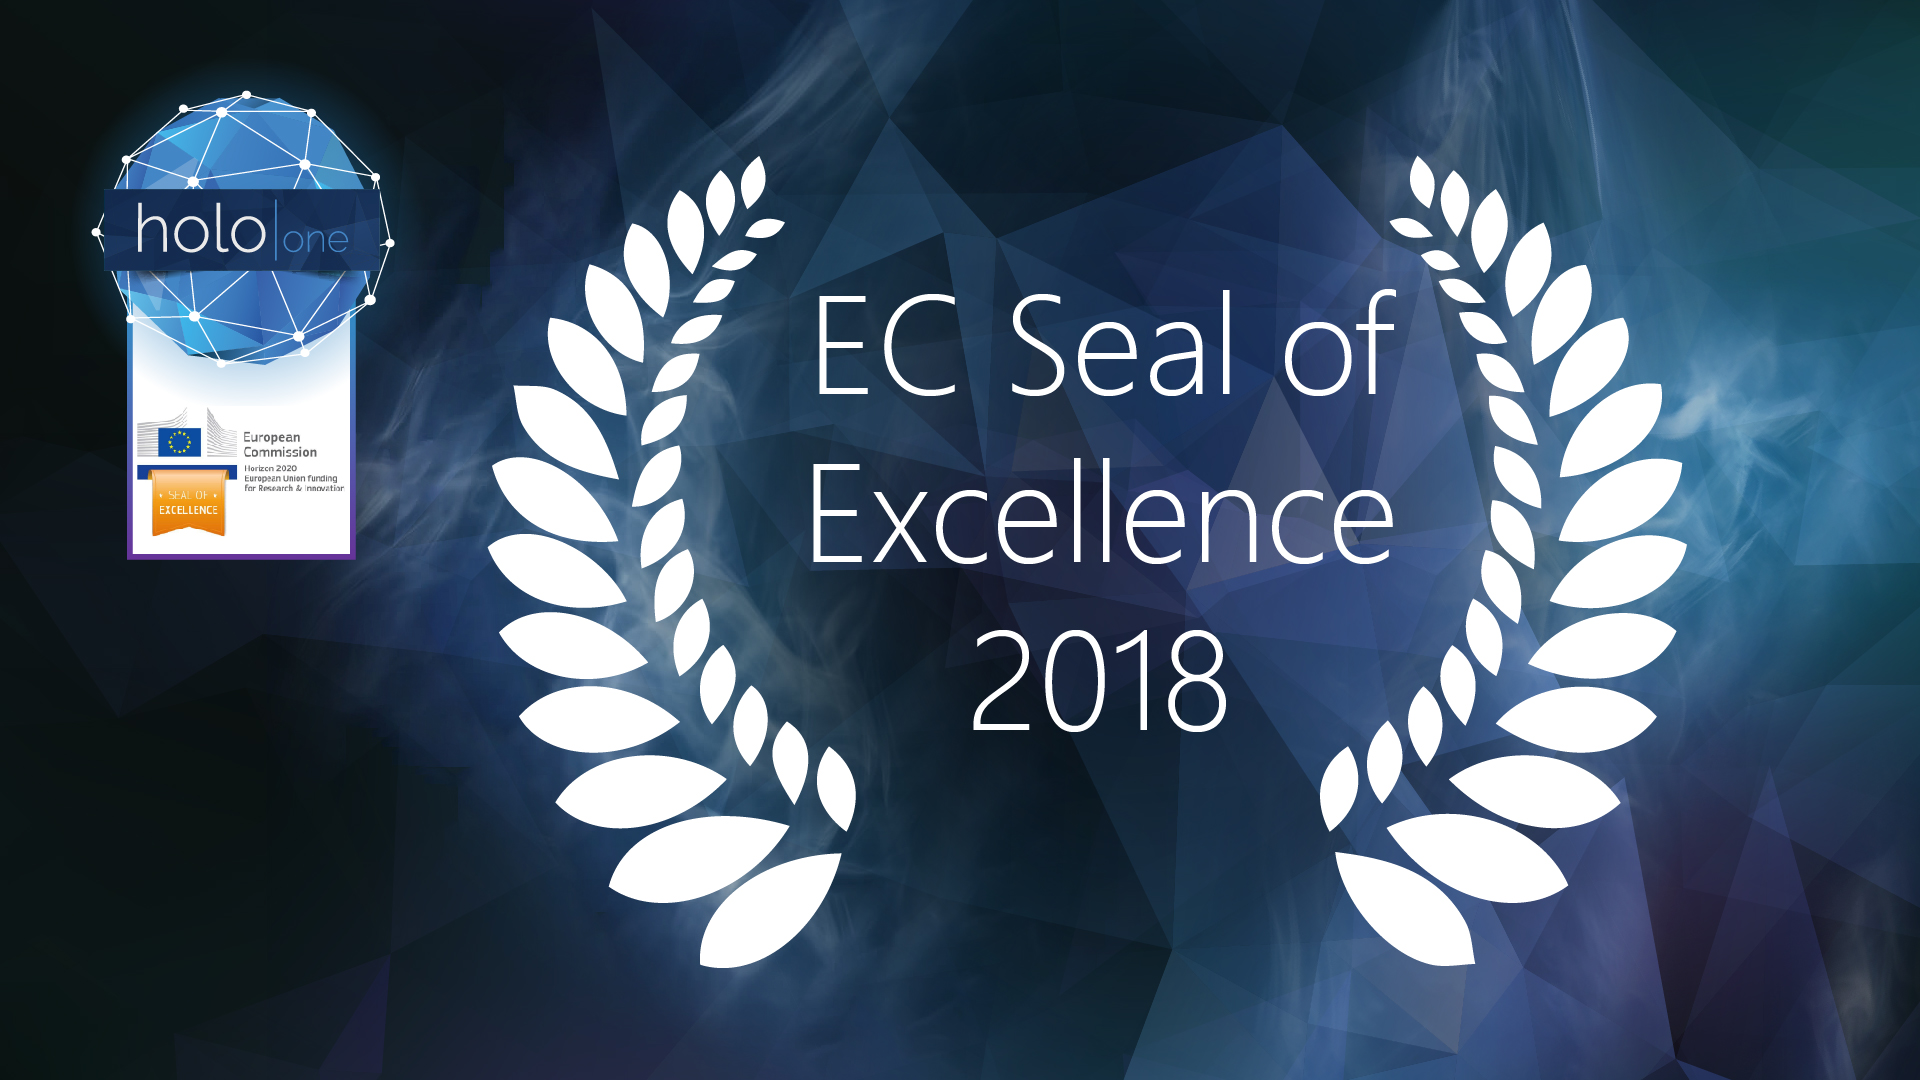 sphere awarded with EU Seal of Excellence!